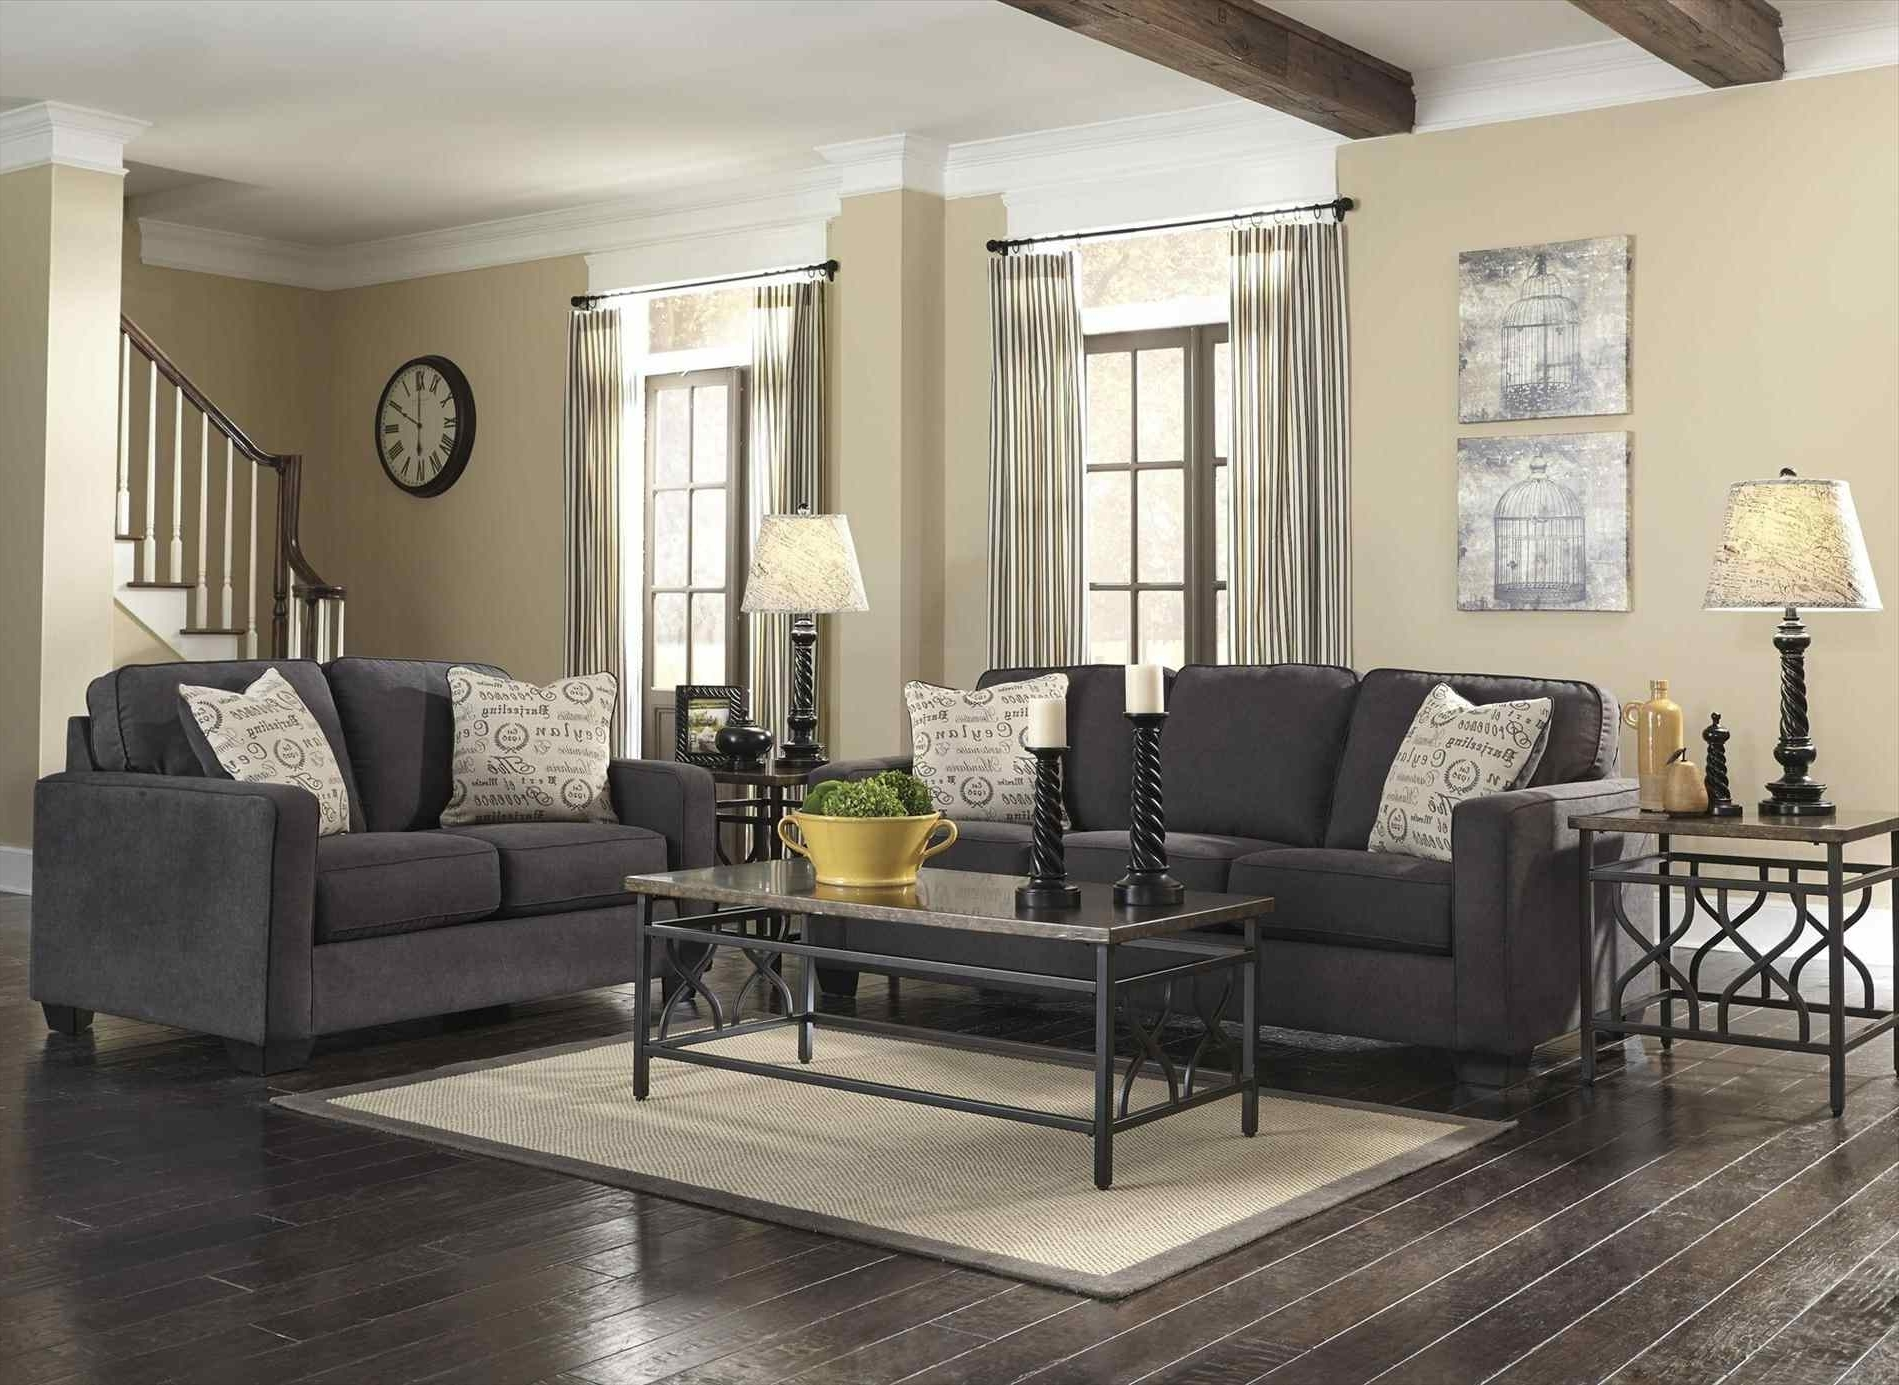 Latest Sam Levitz Sectional Sofas Regarding Couch : W Accent Pillows Sam Levitz Furniture Brindon Sofas Living (View 5 of 15)